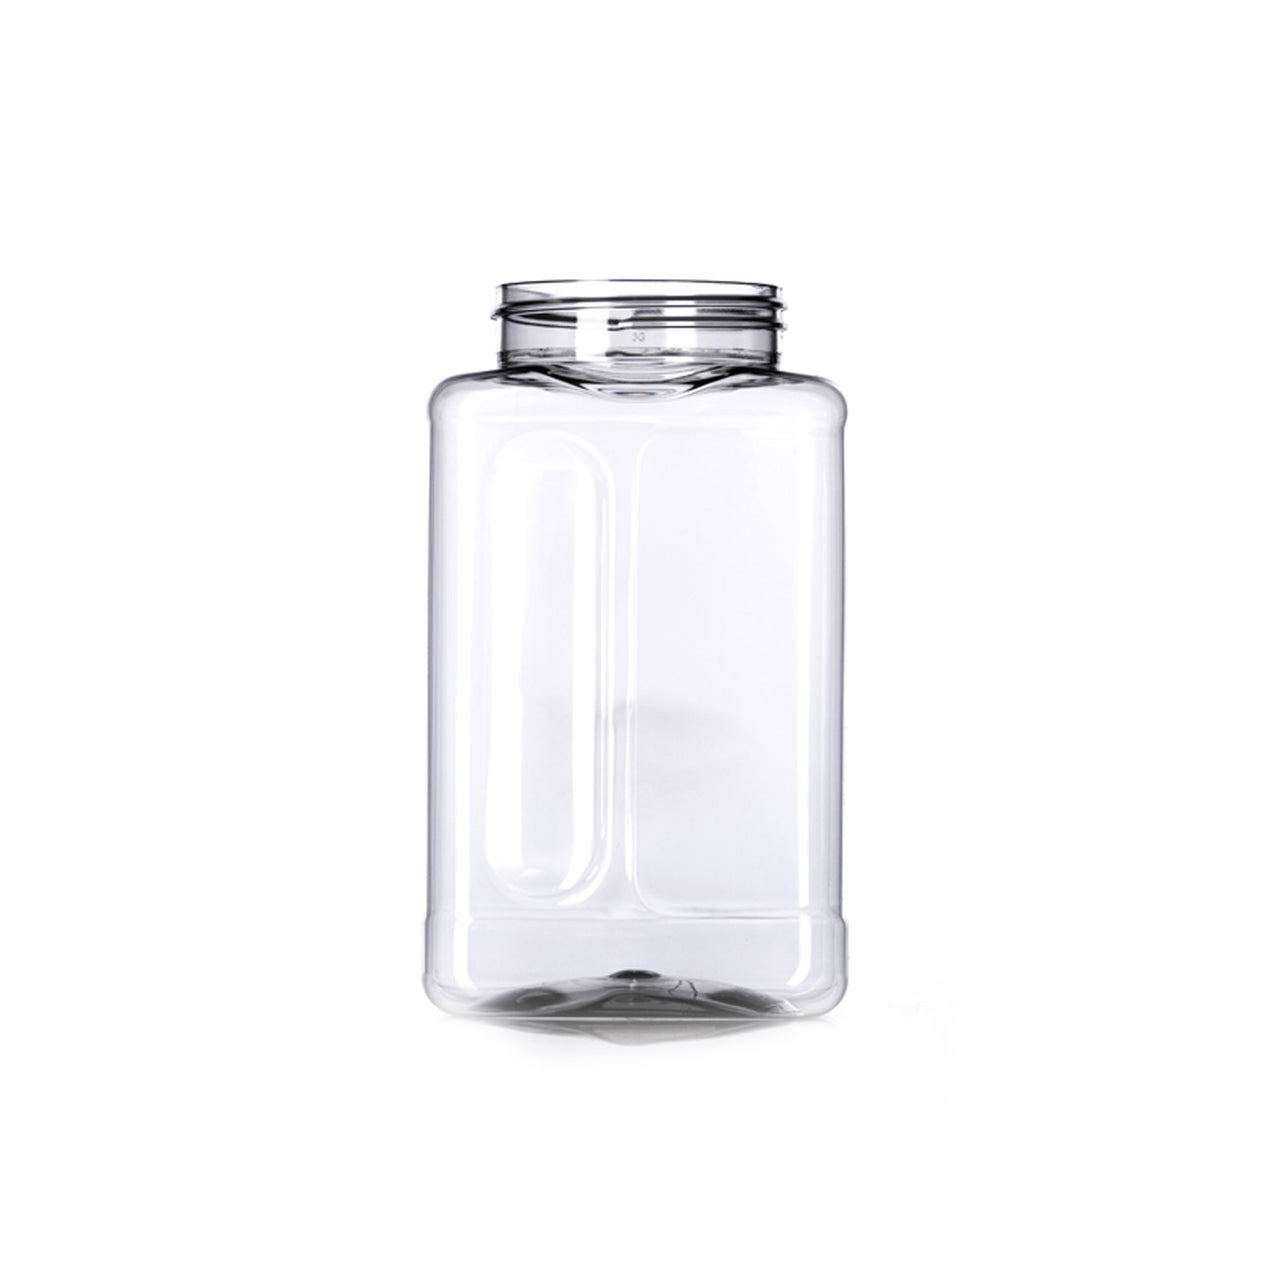 Refillable 16oz (net weight) Container